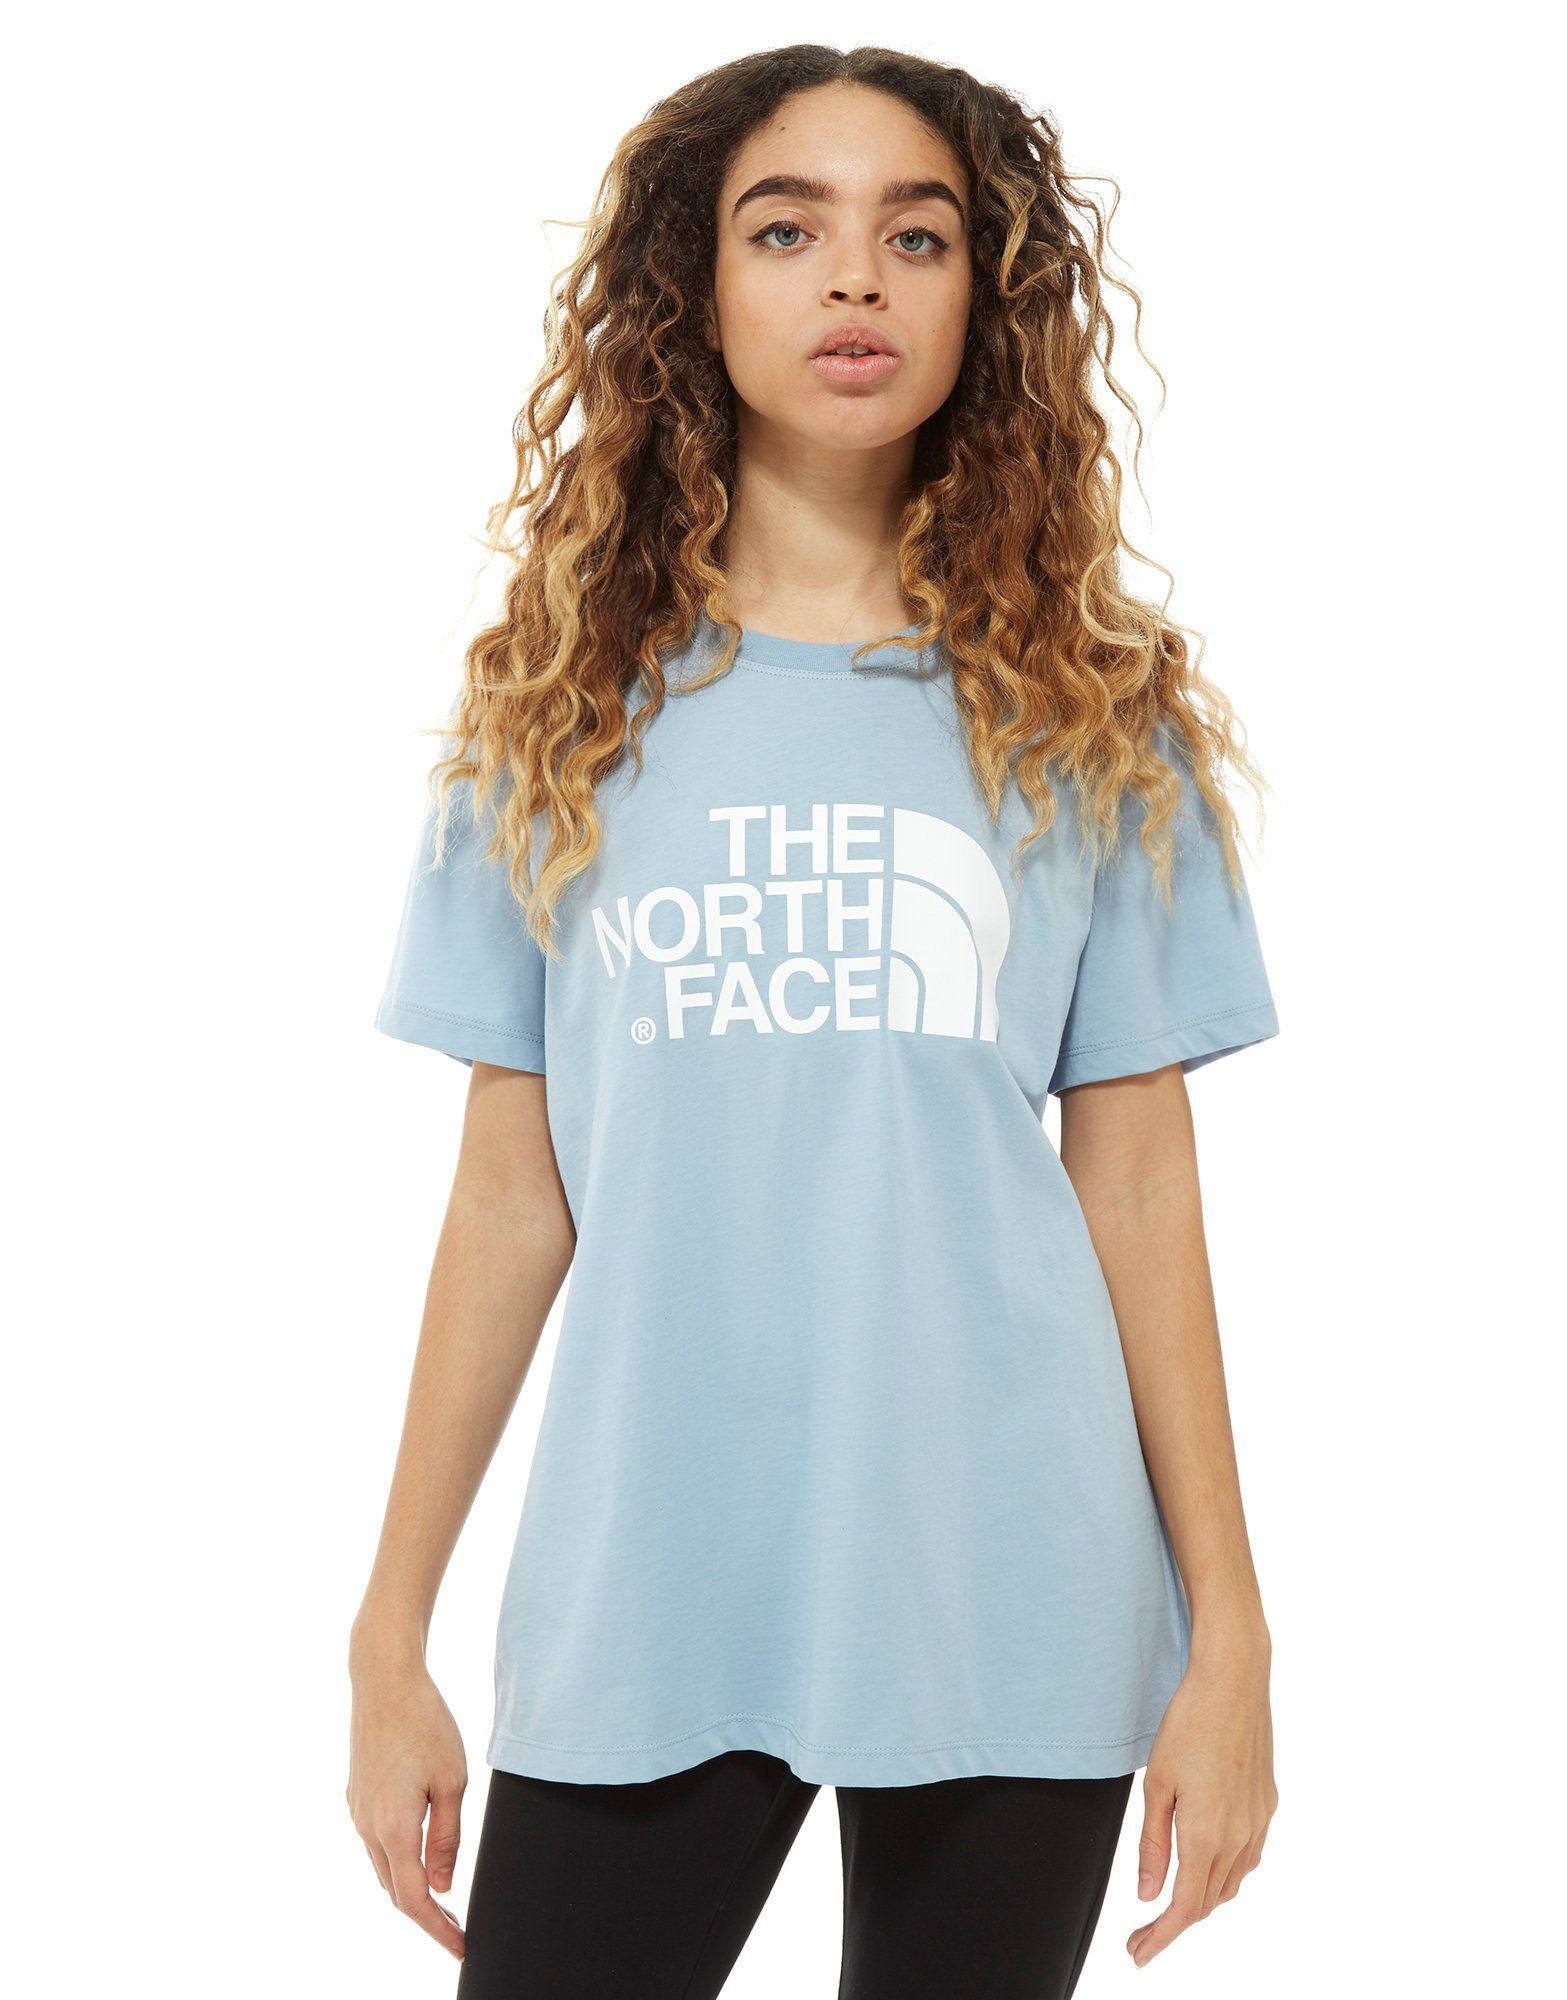 64050b8fe The North Face Logo Boyfriend T-Shirt - Shop online for The North ...